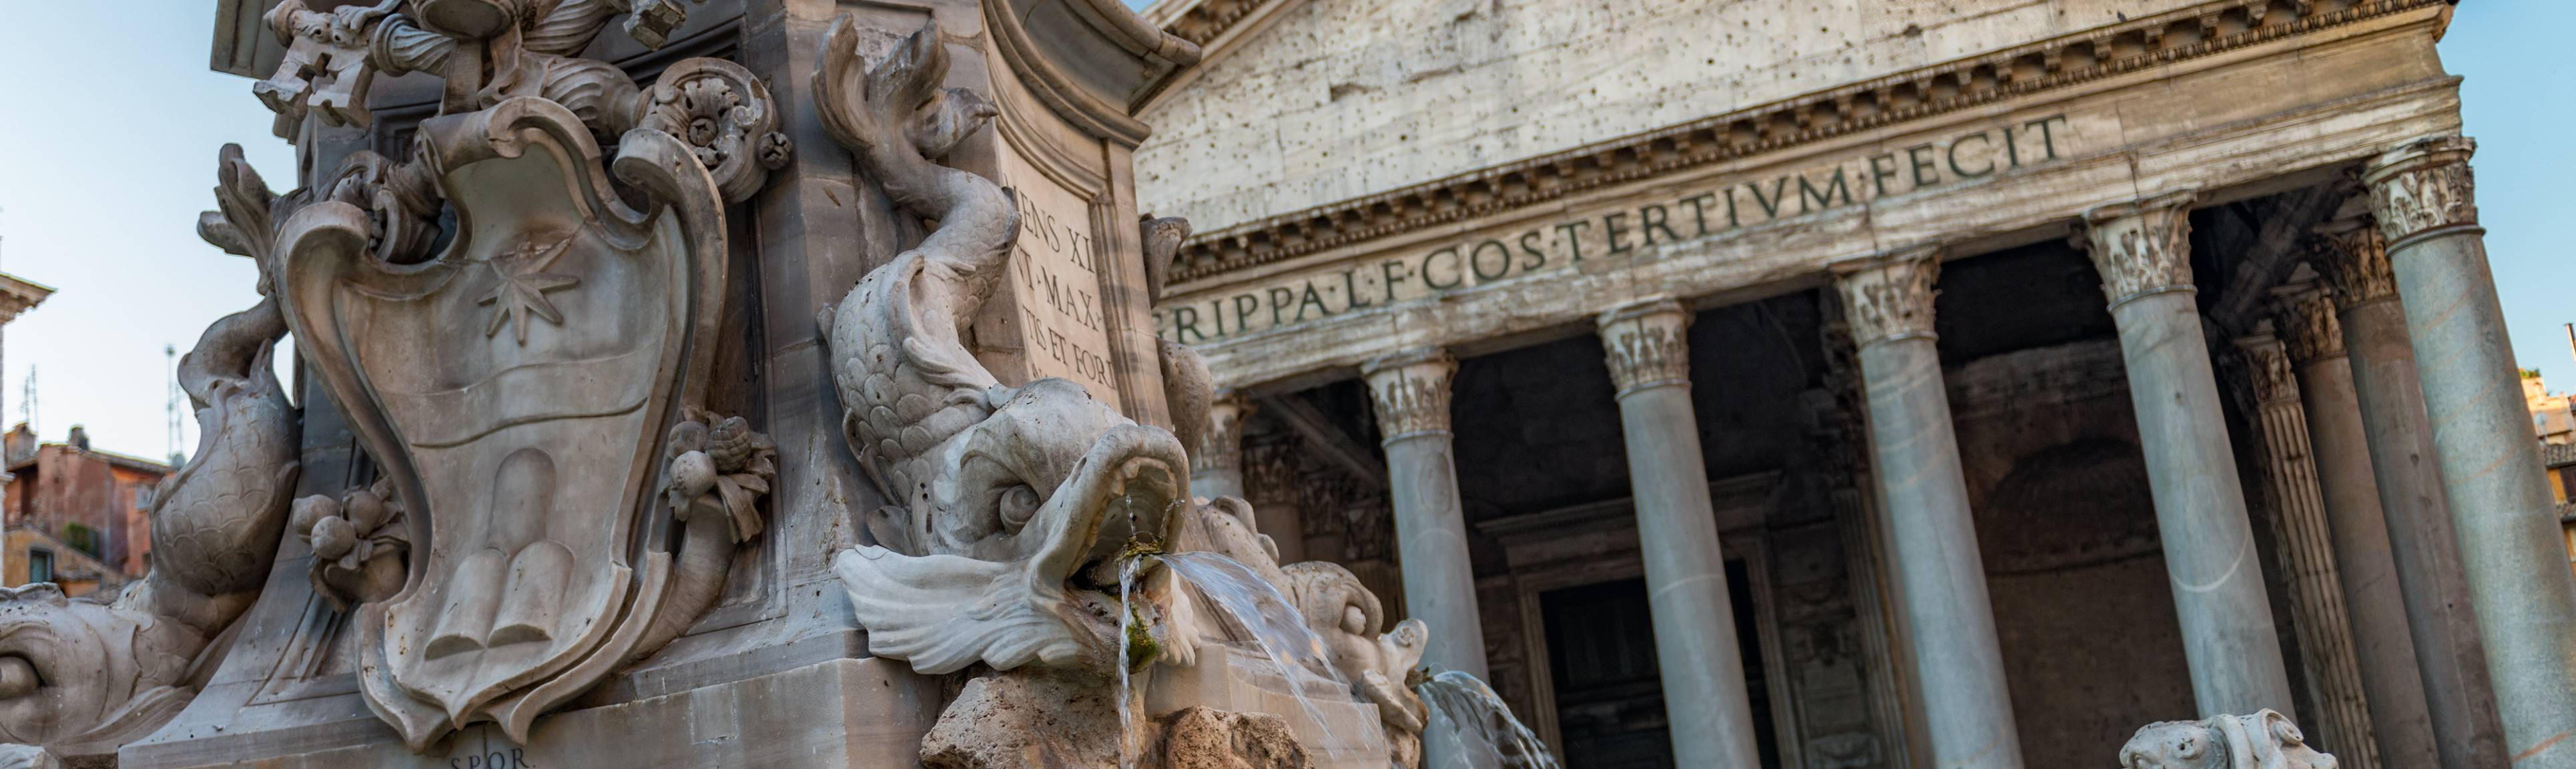 Detail of fountain and facade of Pantheon in Rome